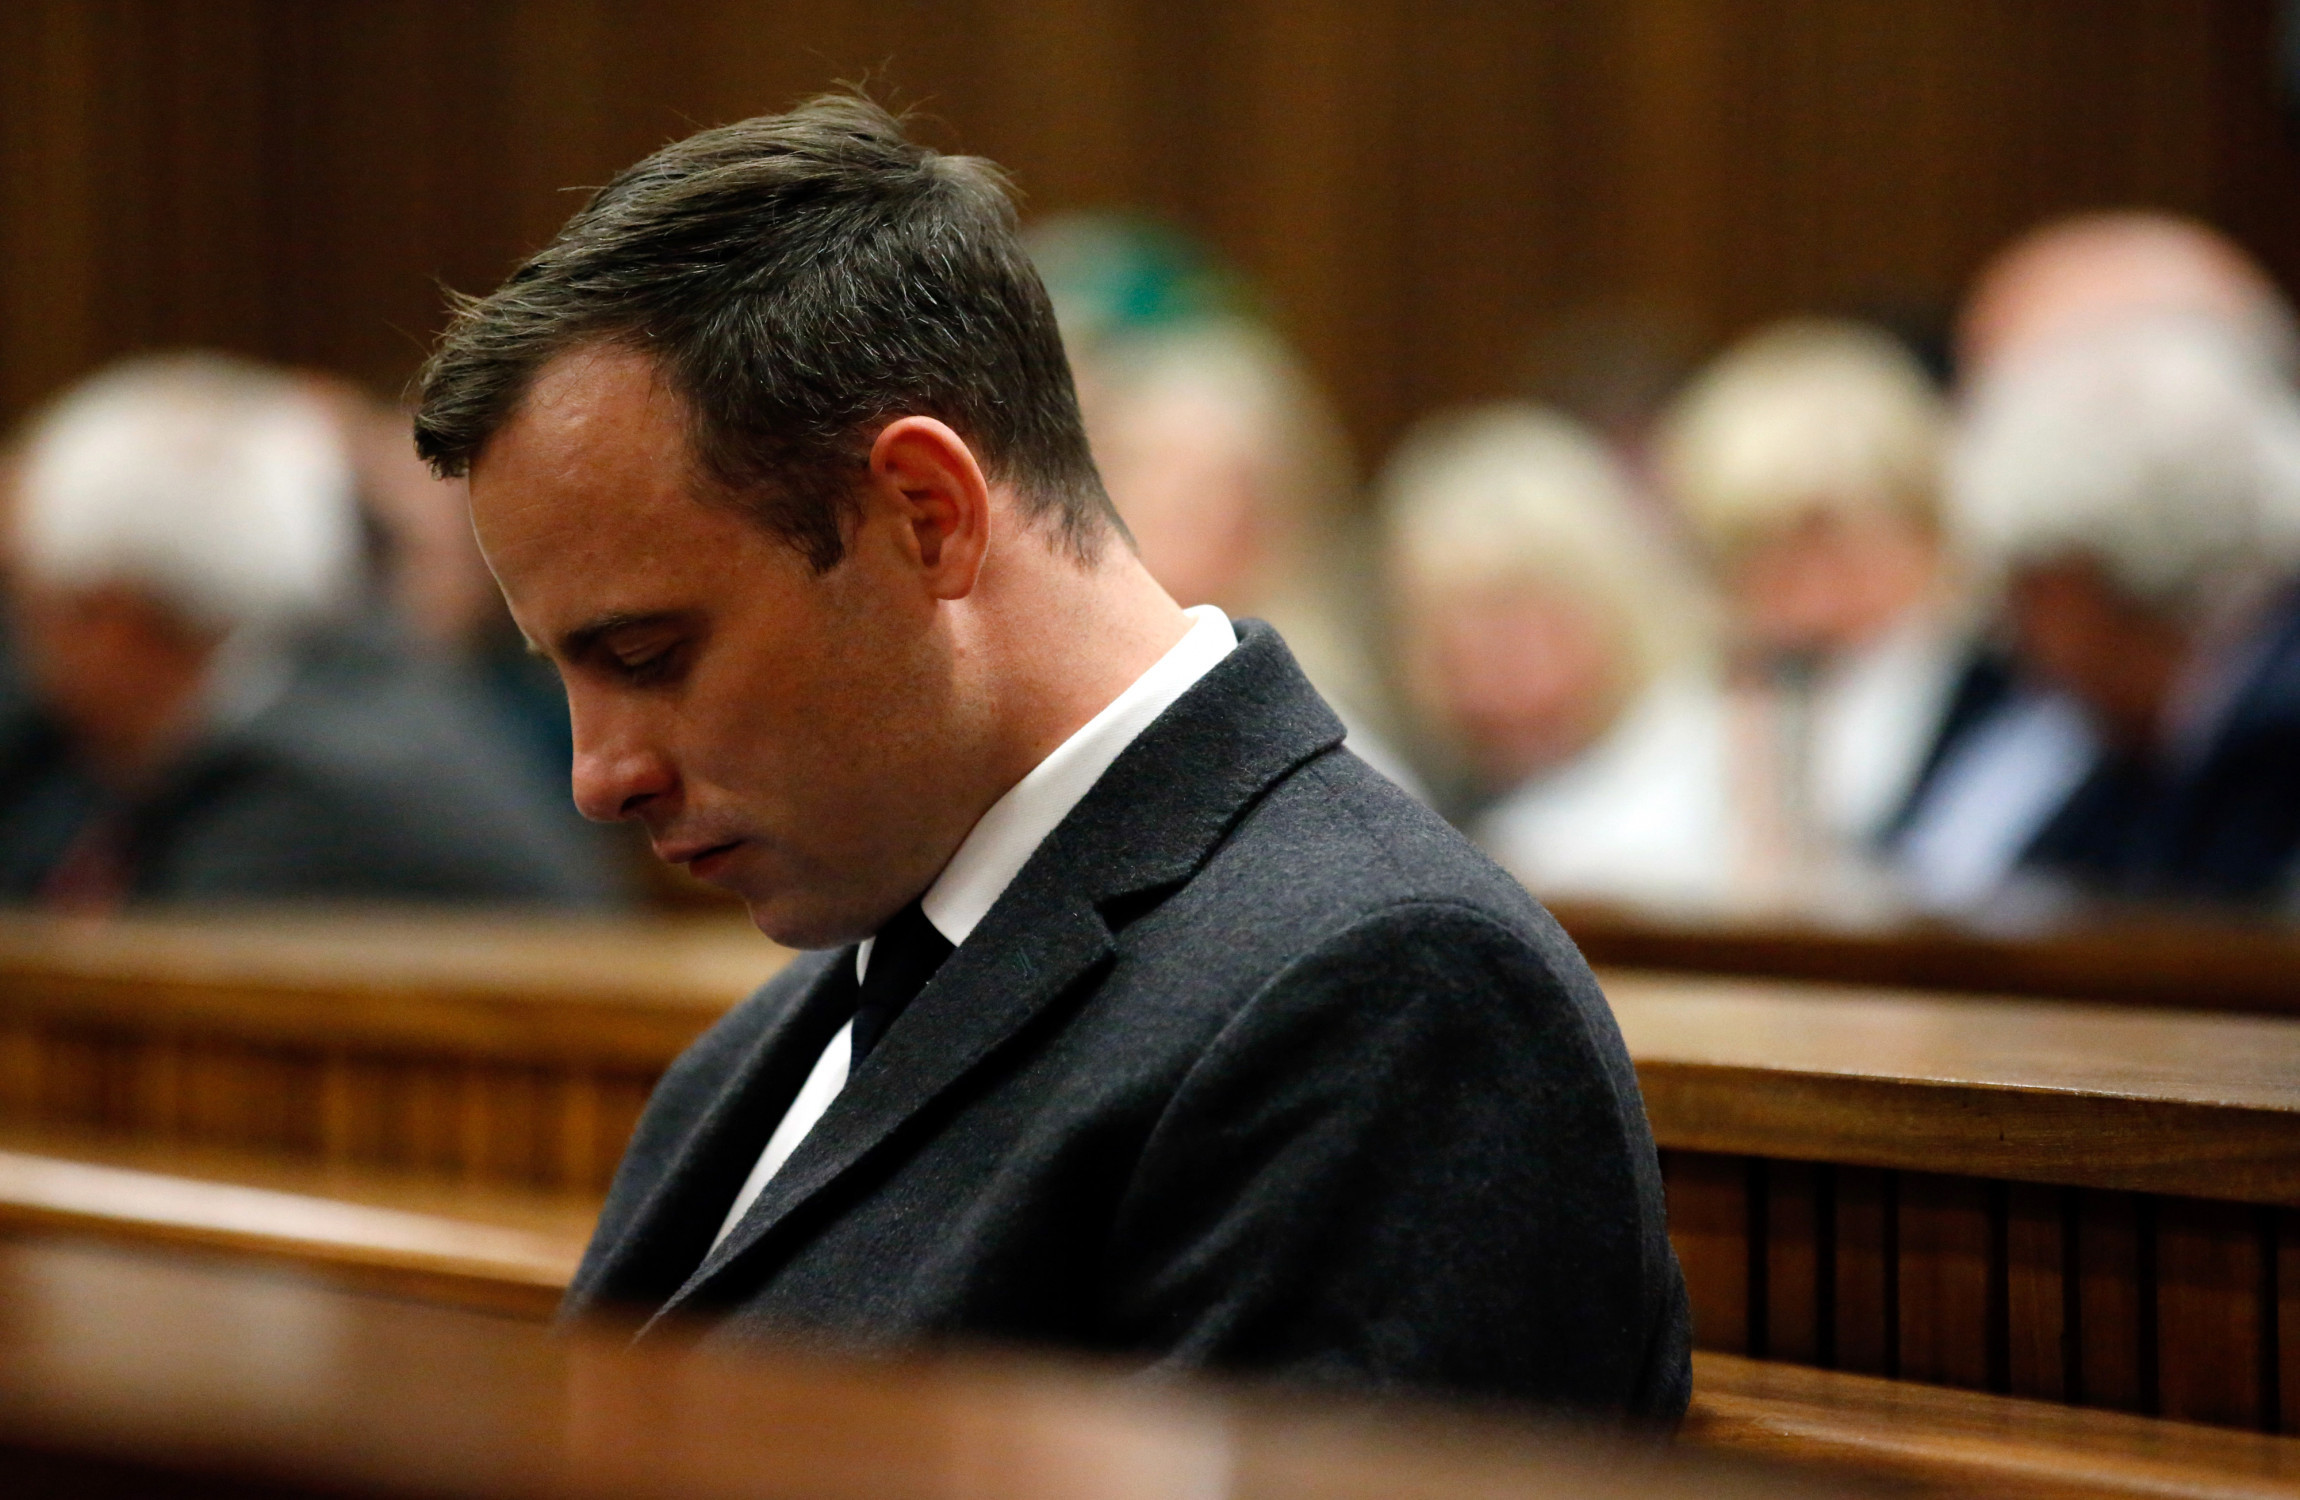 Oscar Pistorius' jail term lengthened to 13 years